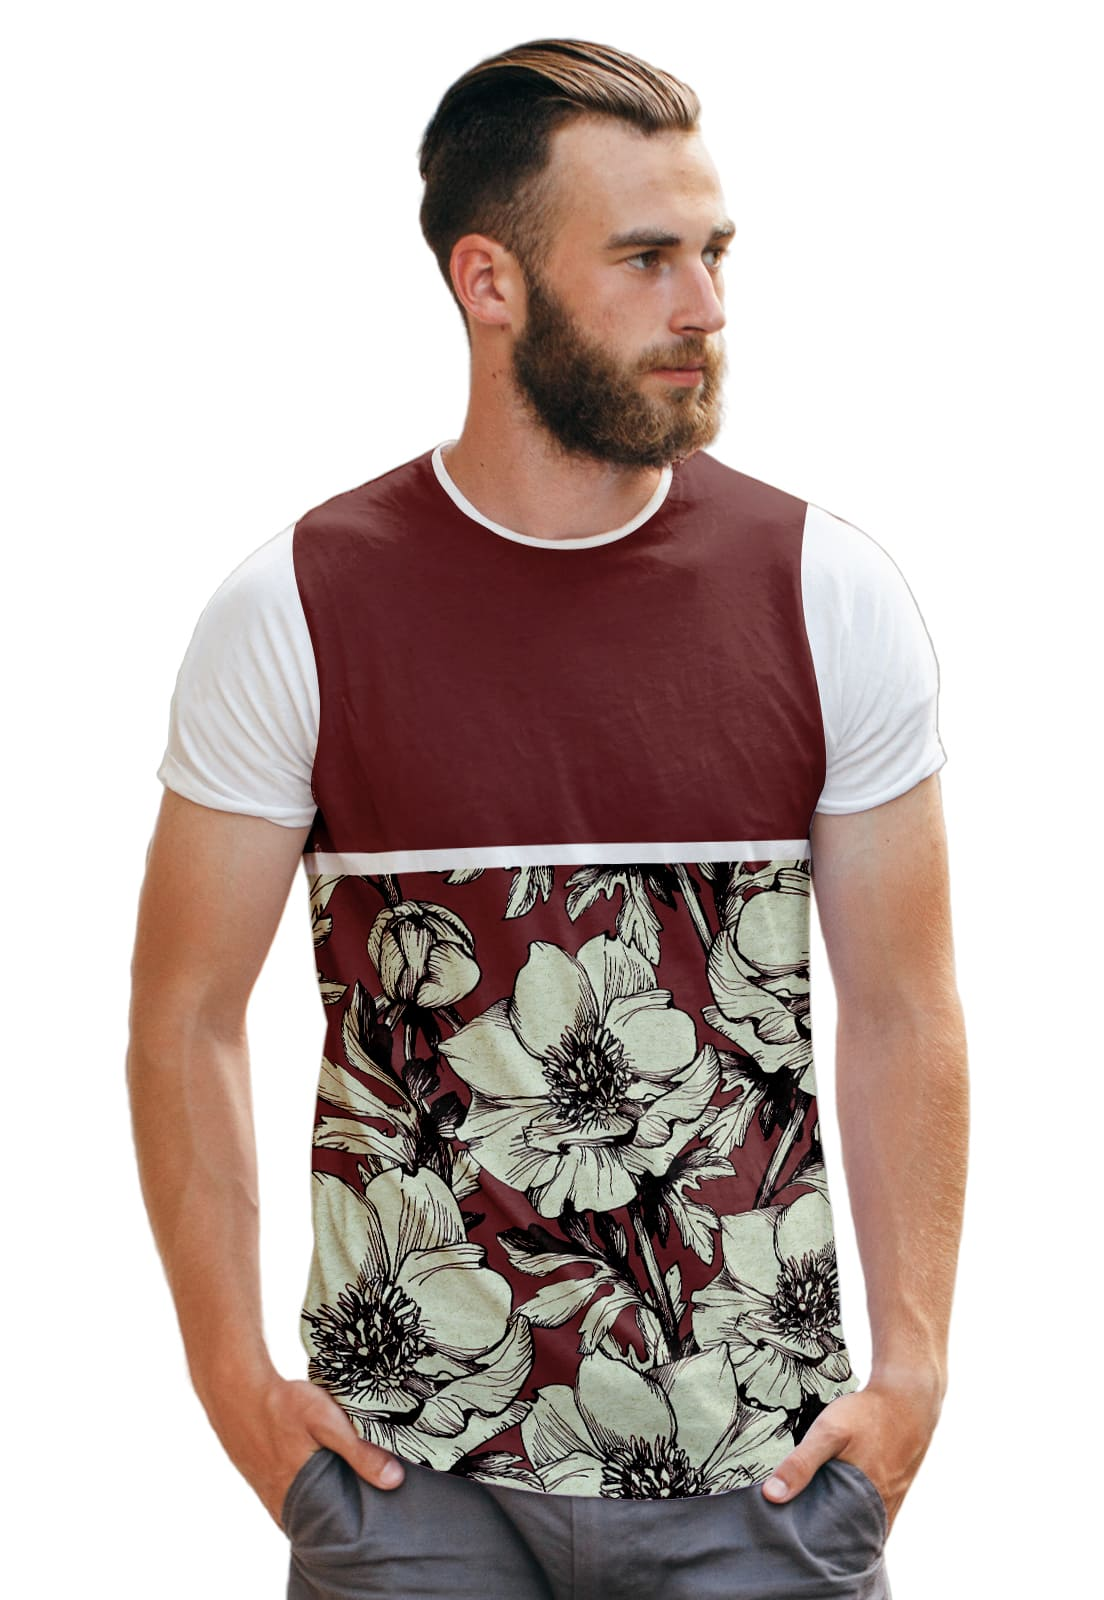 Camiseta Vermelha Florida Masculina Flores Collection